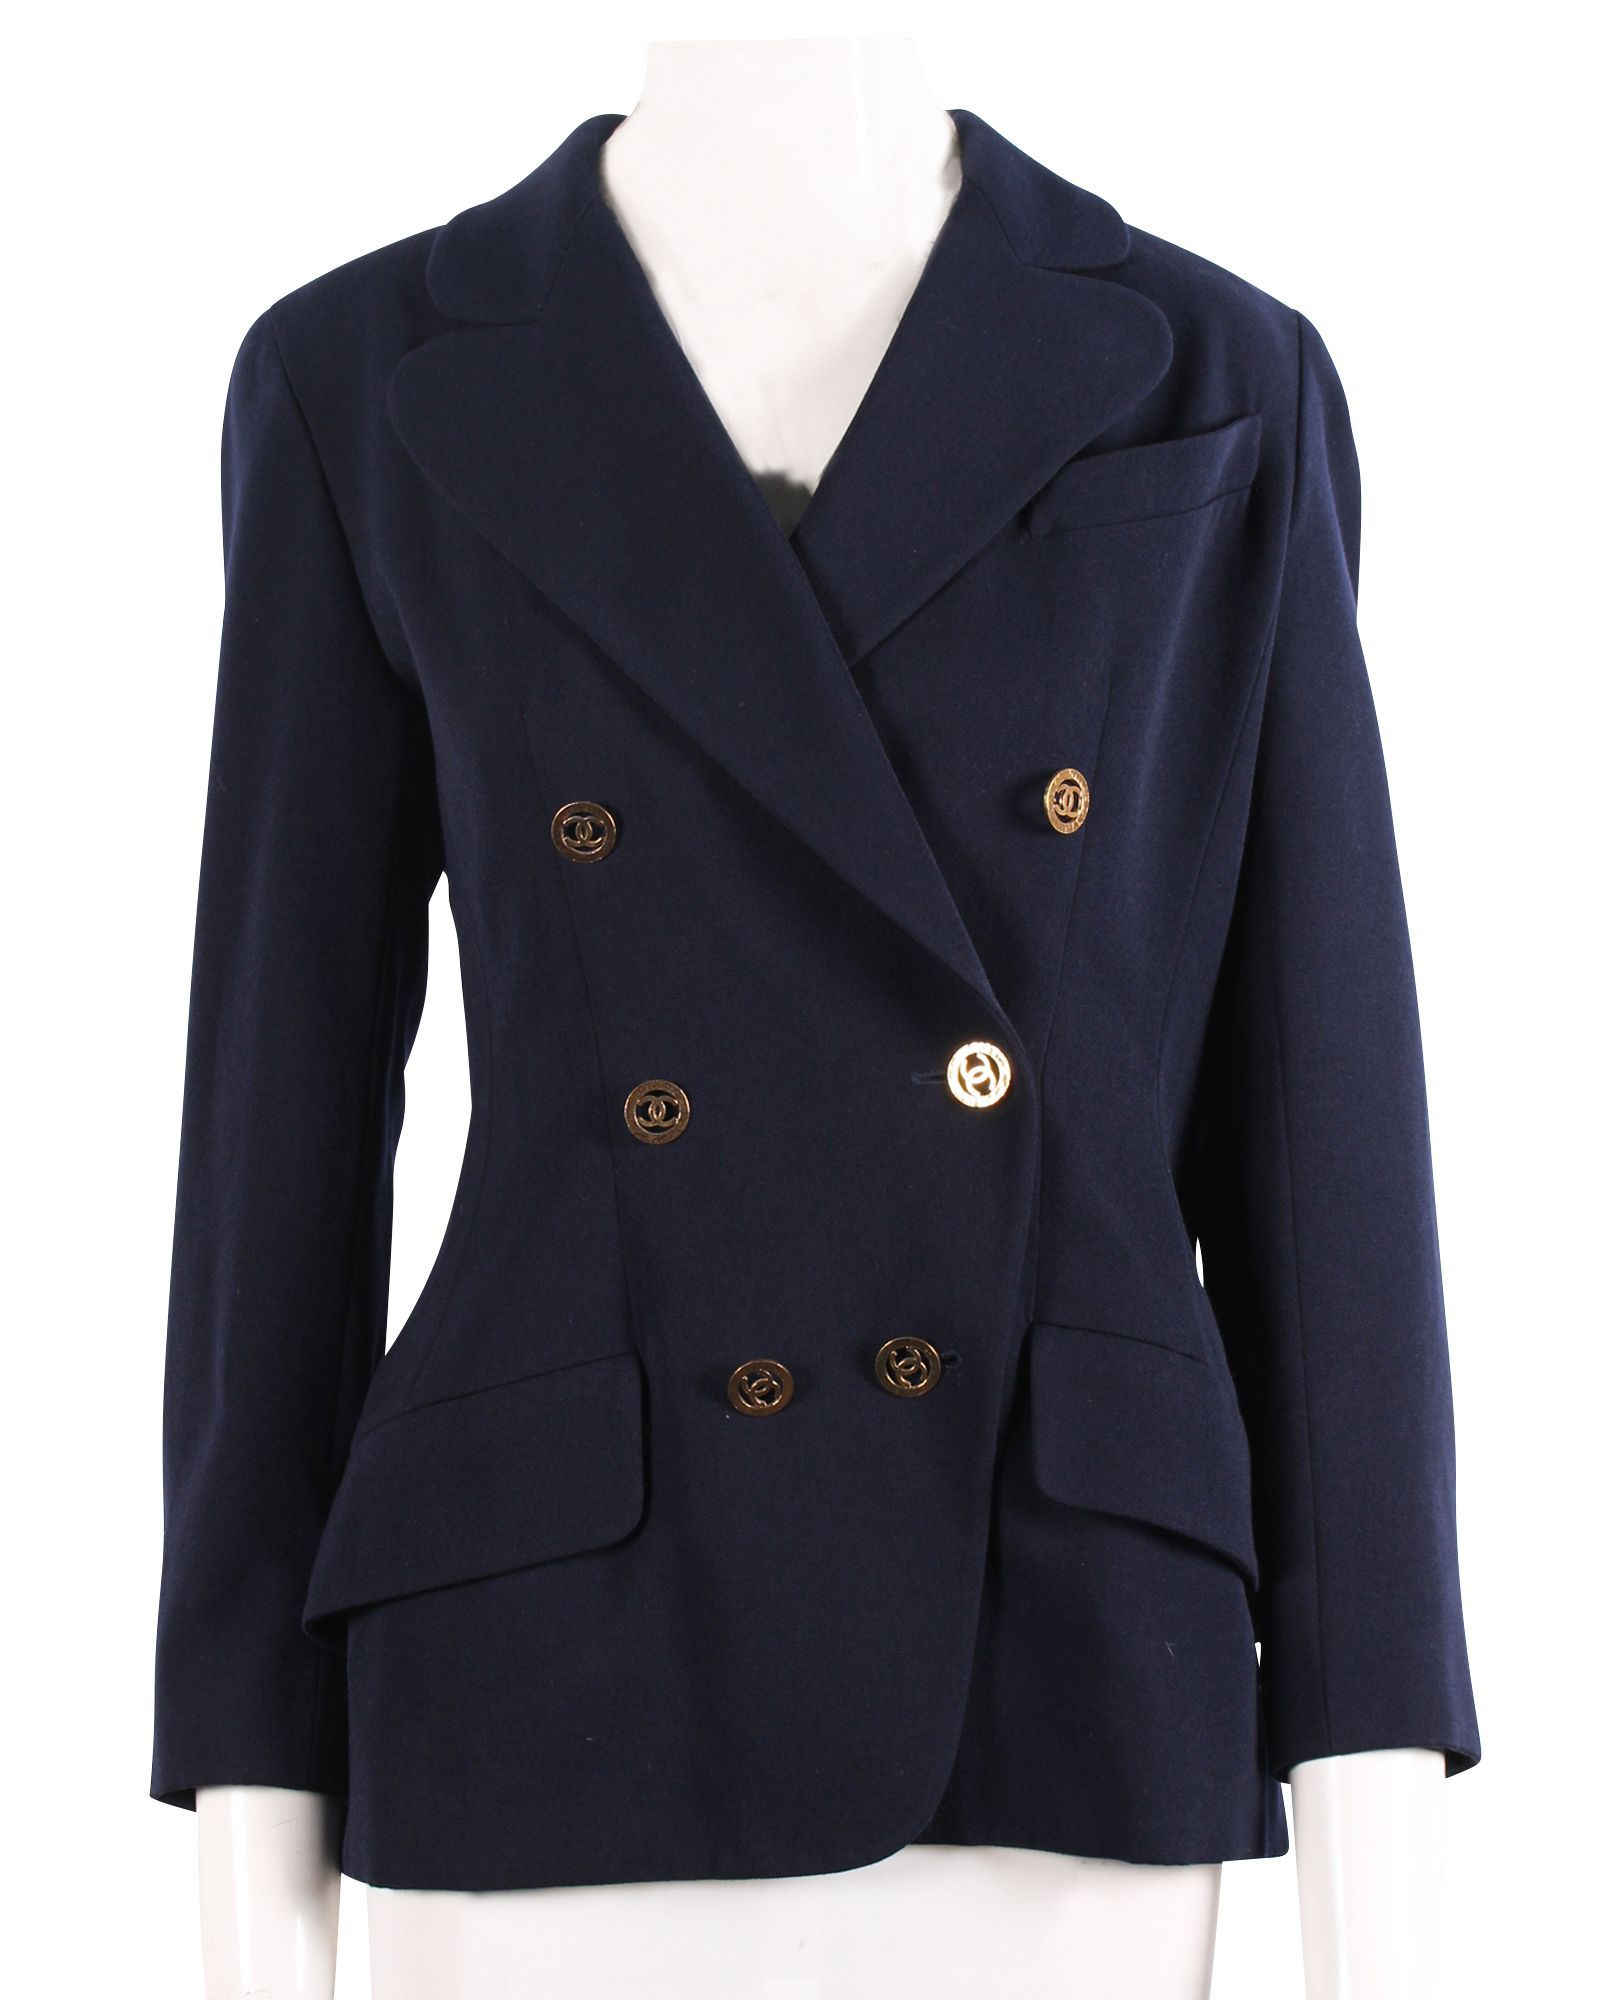 Chanel Navy Blue Jacket With Gold Buttons -Pre Owned Condition Gently Loved